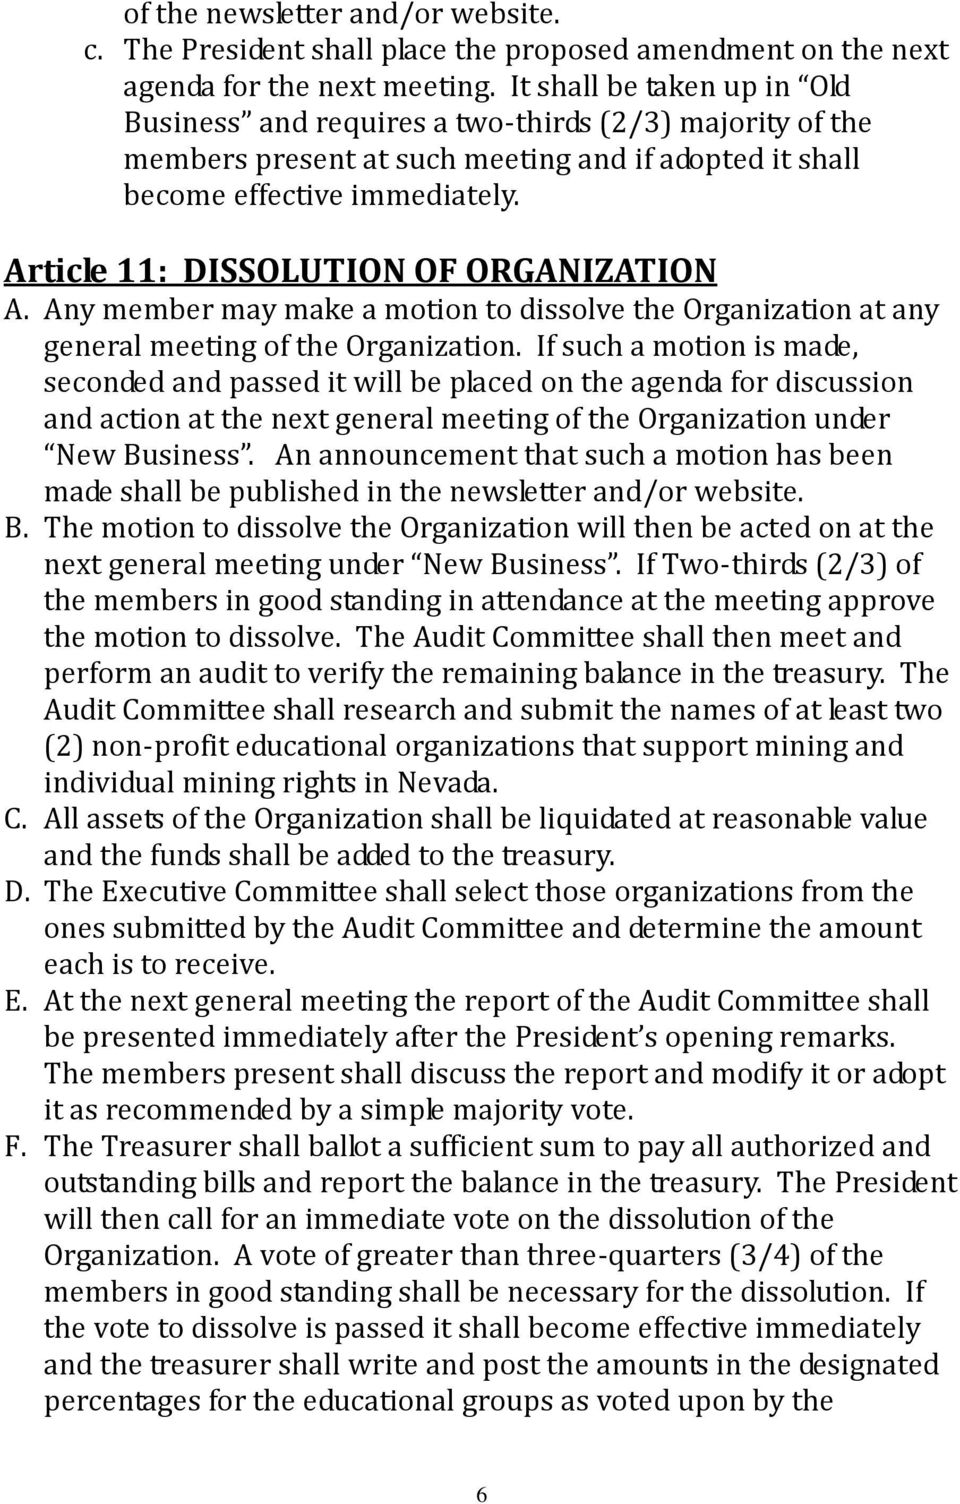 Article 11: DISSOLUTION OF ORGANIZATION A. Any member may make a motion to dissolve the Organization at any general meeting of the Organization.